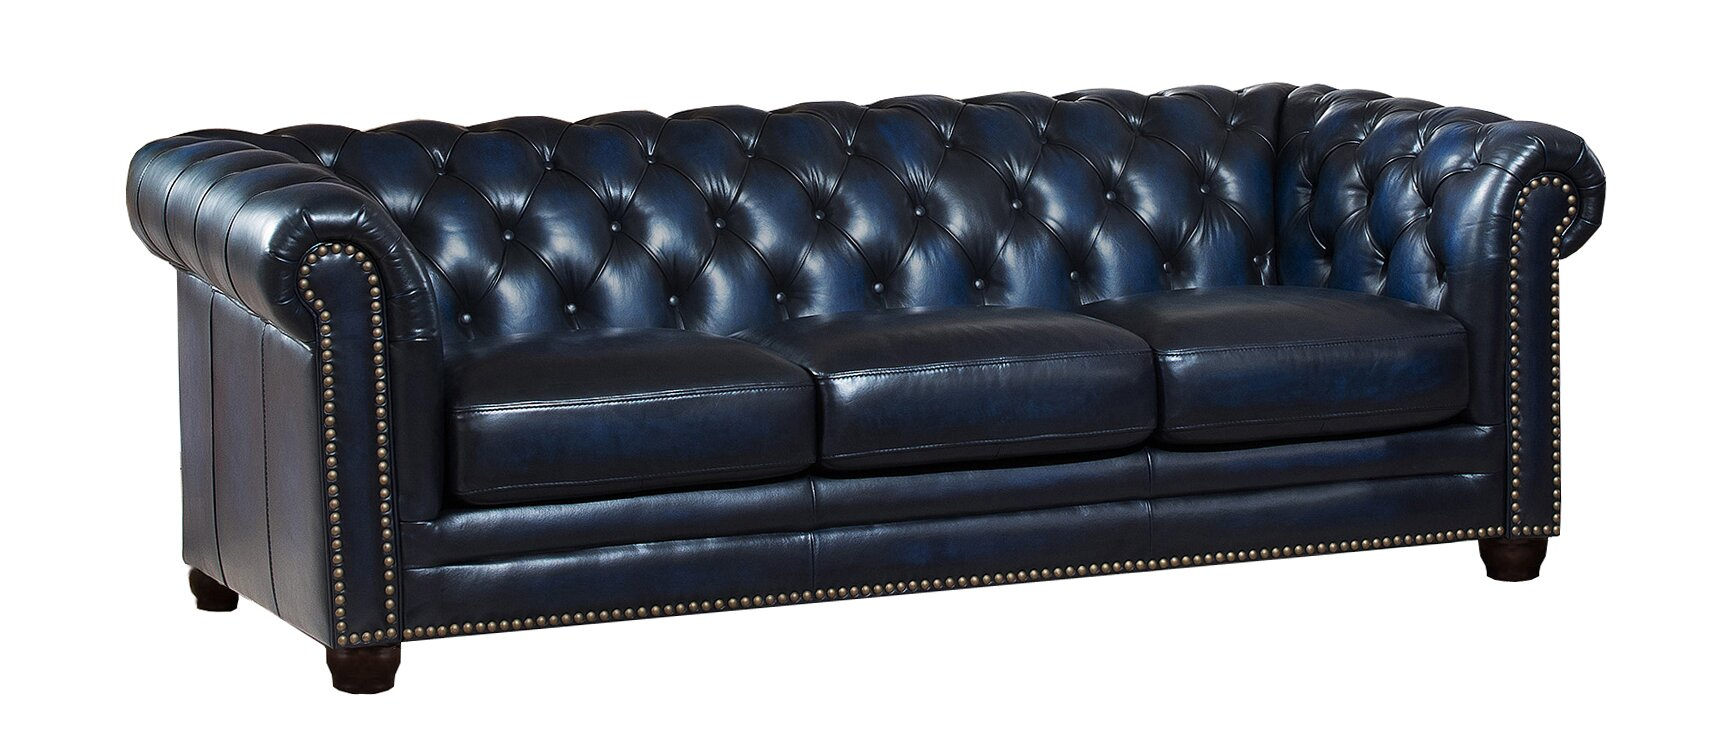 Nebraska Leather Chesterfield Sofa